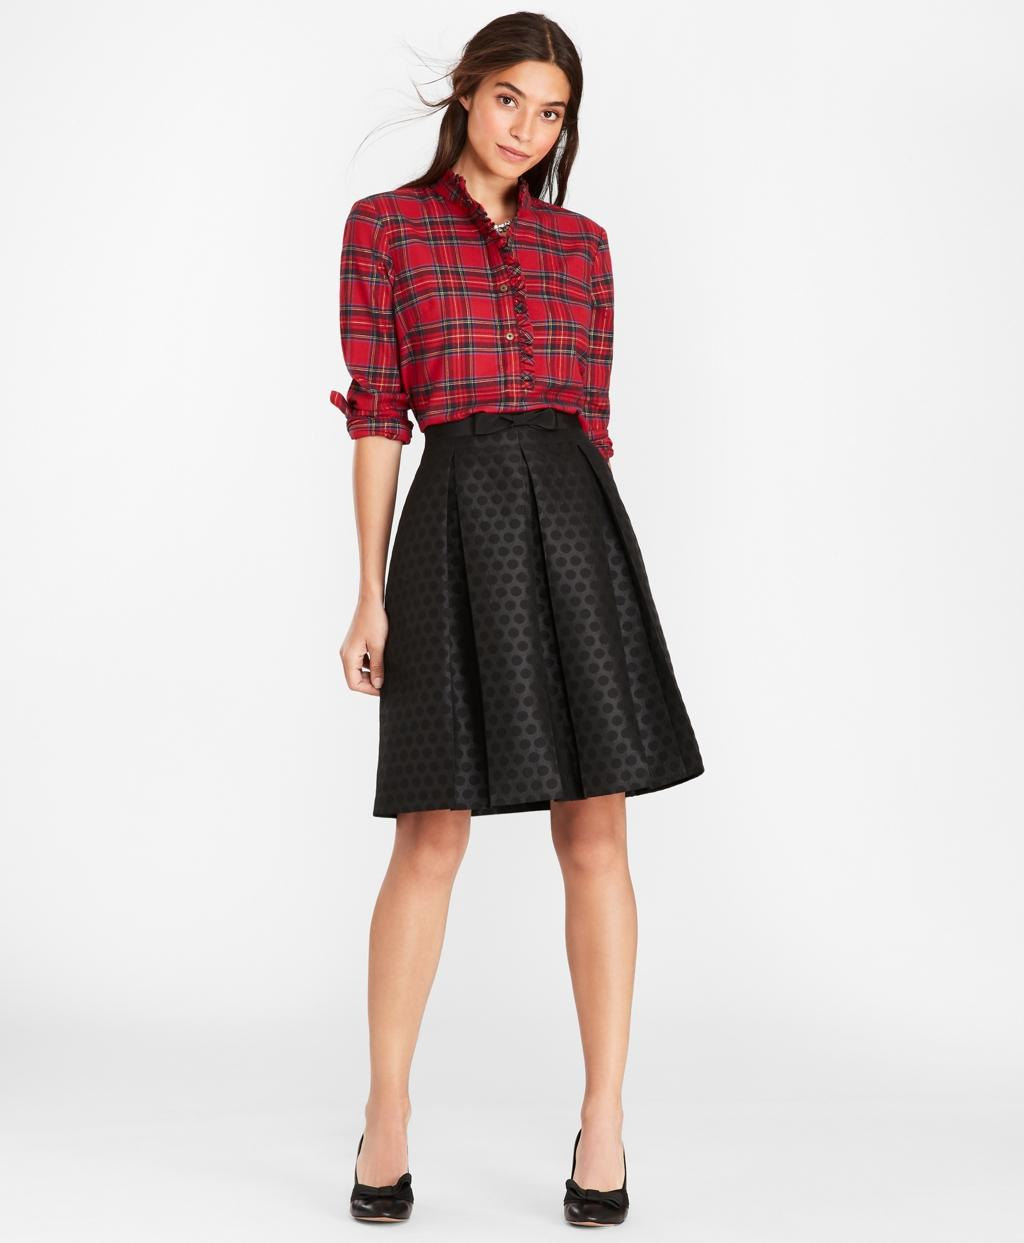 7b6e46cd5 Lyst - Brooks Brothers Polka-dot Jacquard Pleated Skirt in Black - Save 25%